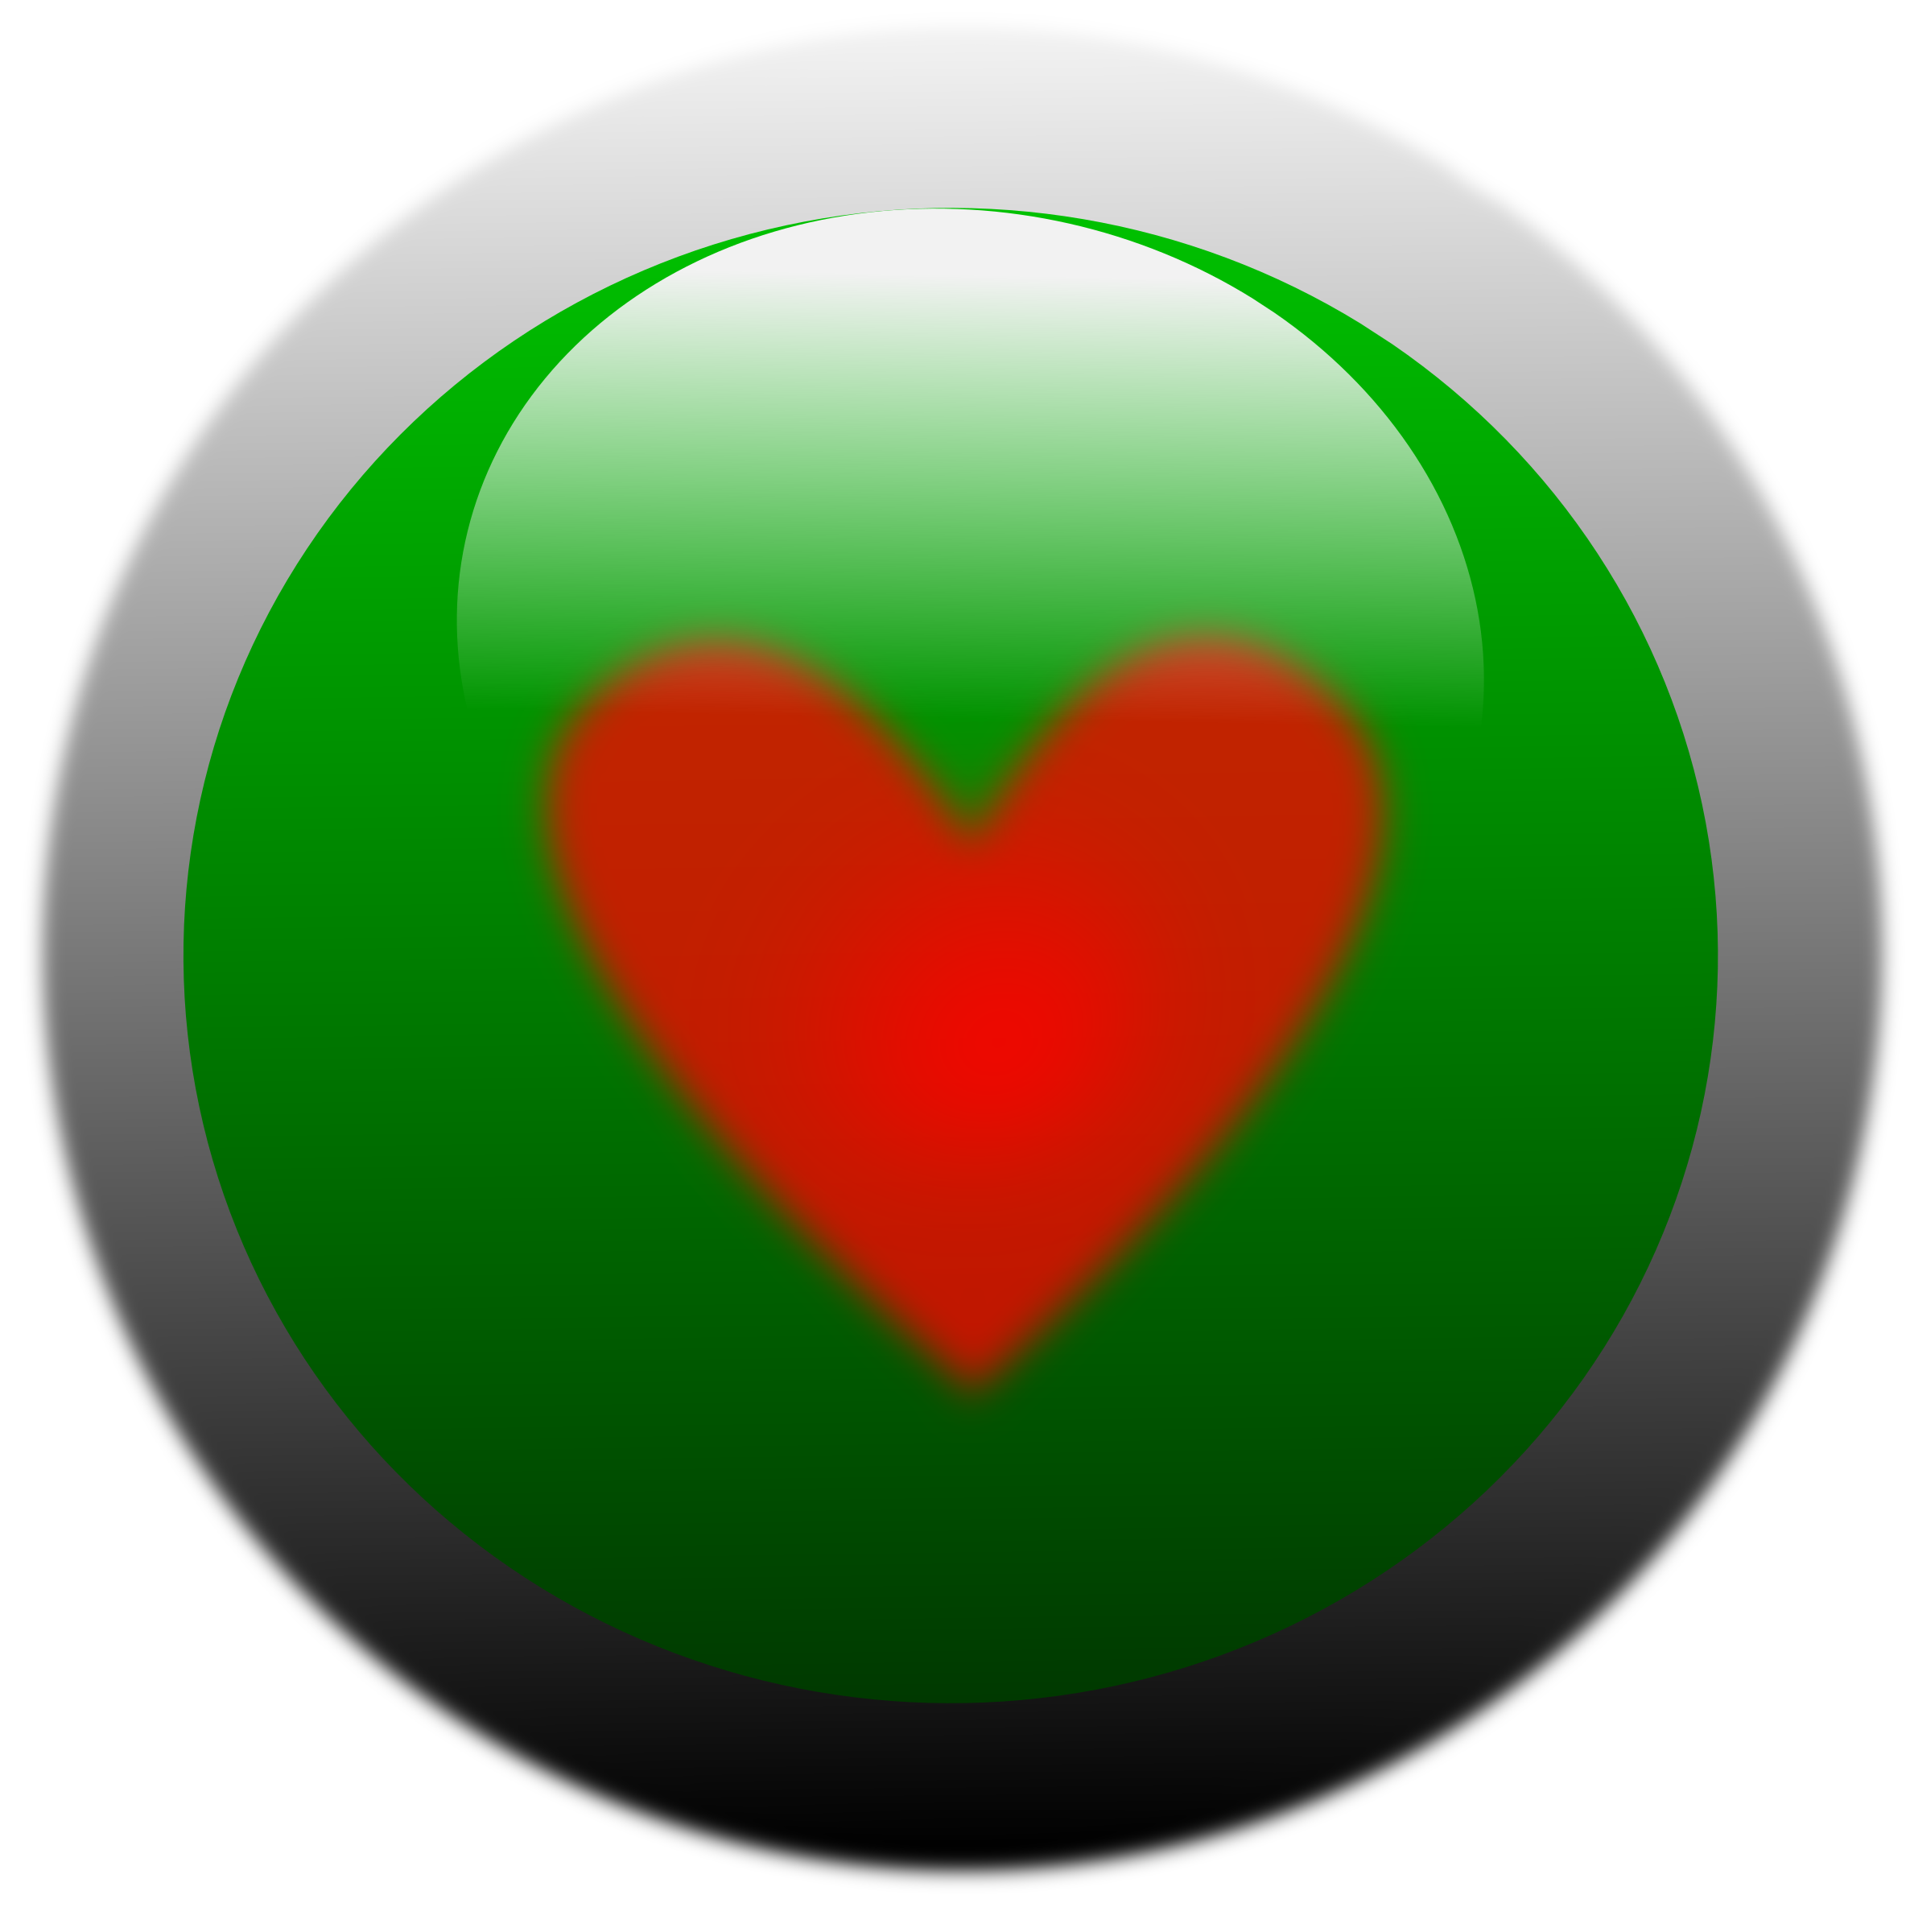 Love button by pauthonic